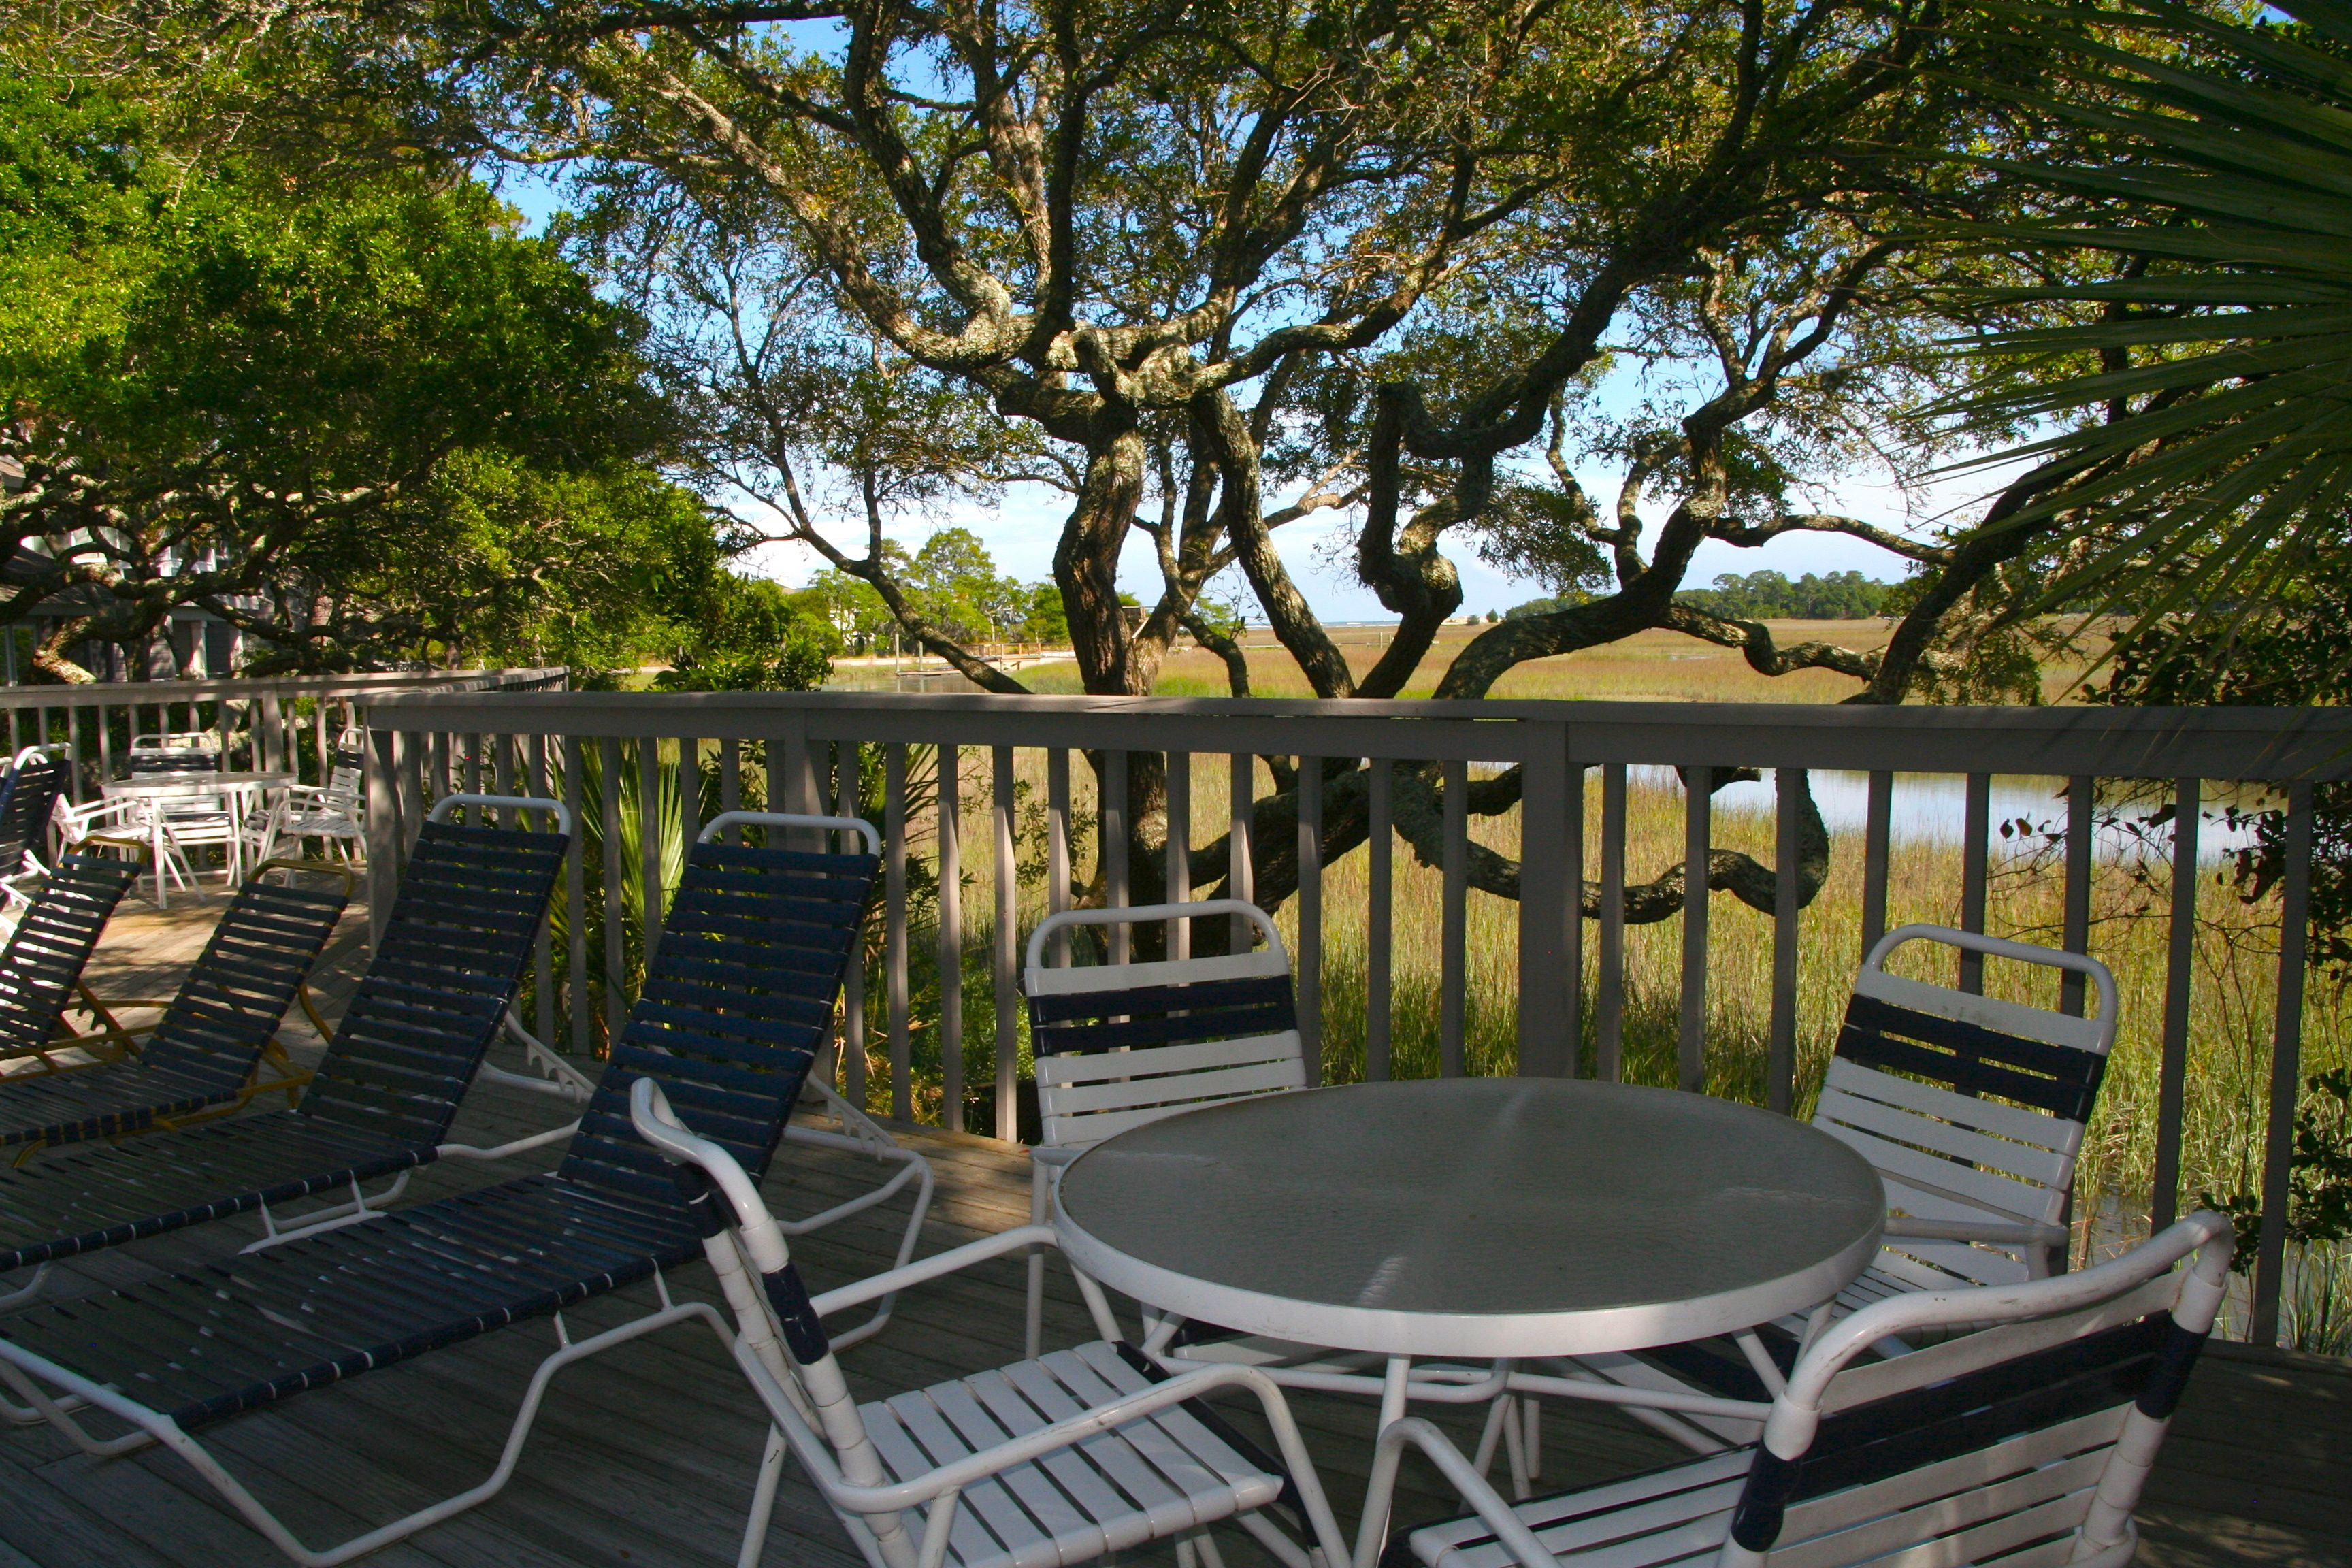 A short walk from the villa, there are chaises and tables/chairs for you to relax in.